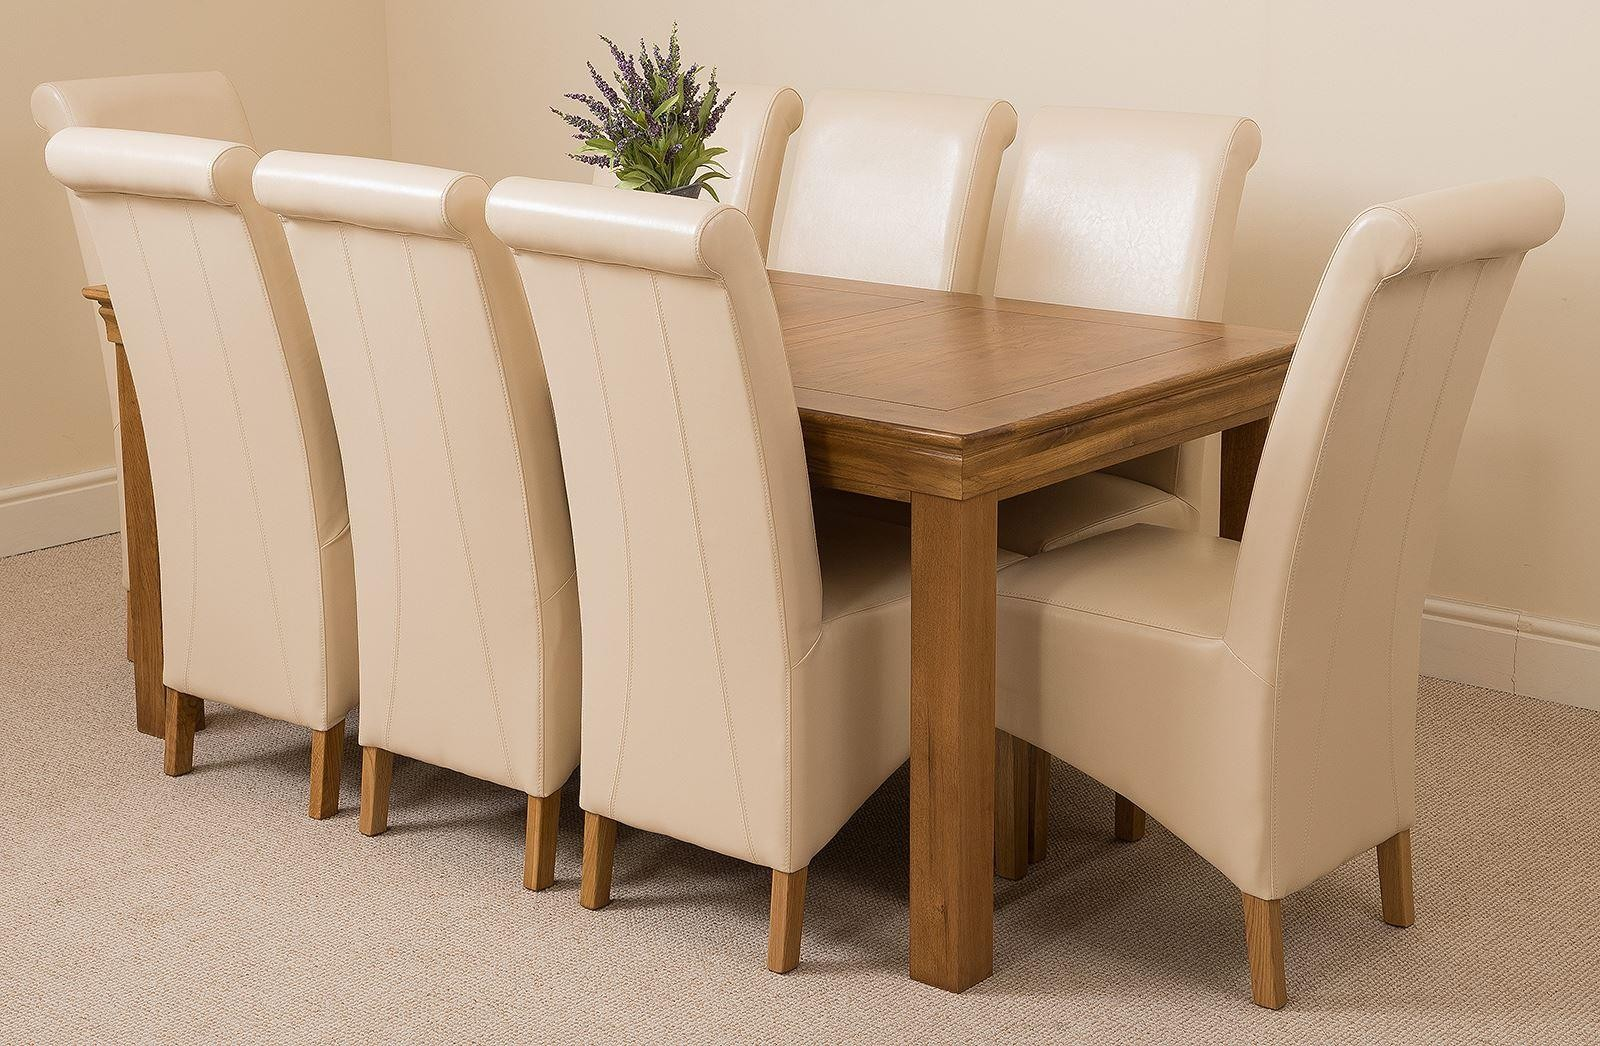 French Chateau Rustic Oak Dining Table With 8 Ivory Montana Dining